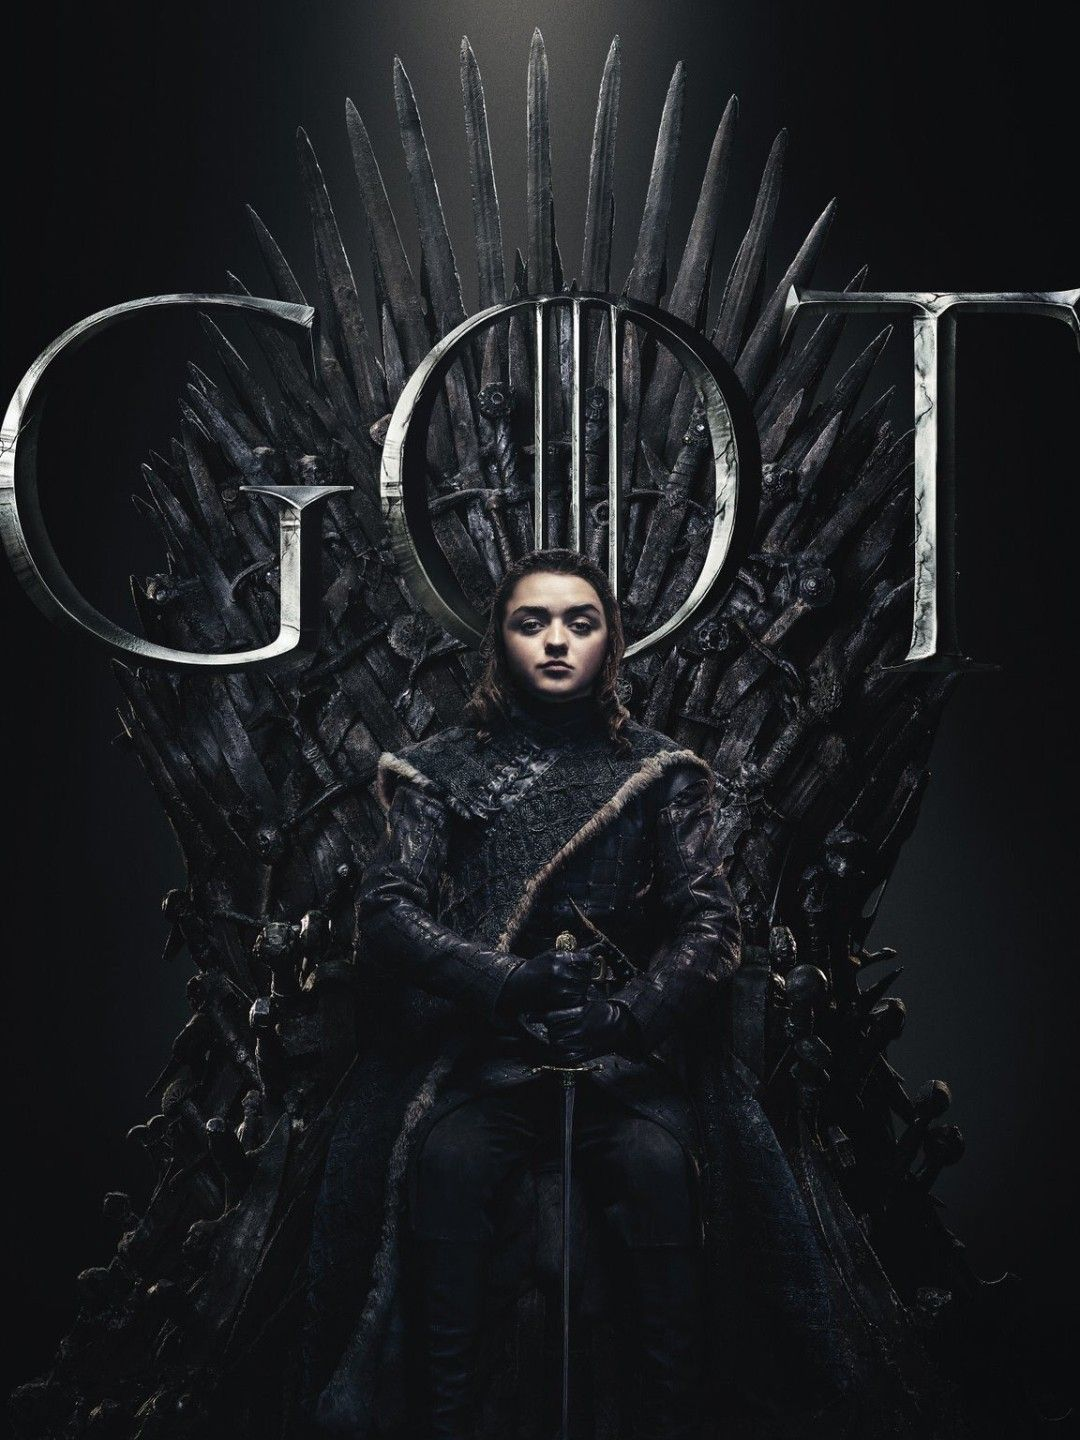 Game Of Thrones Season 8 [Hindi Dub (Voice Over)] Complete 480p 720p / 1080p HD [GOT S8 Episode 6 Added]